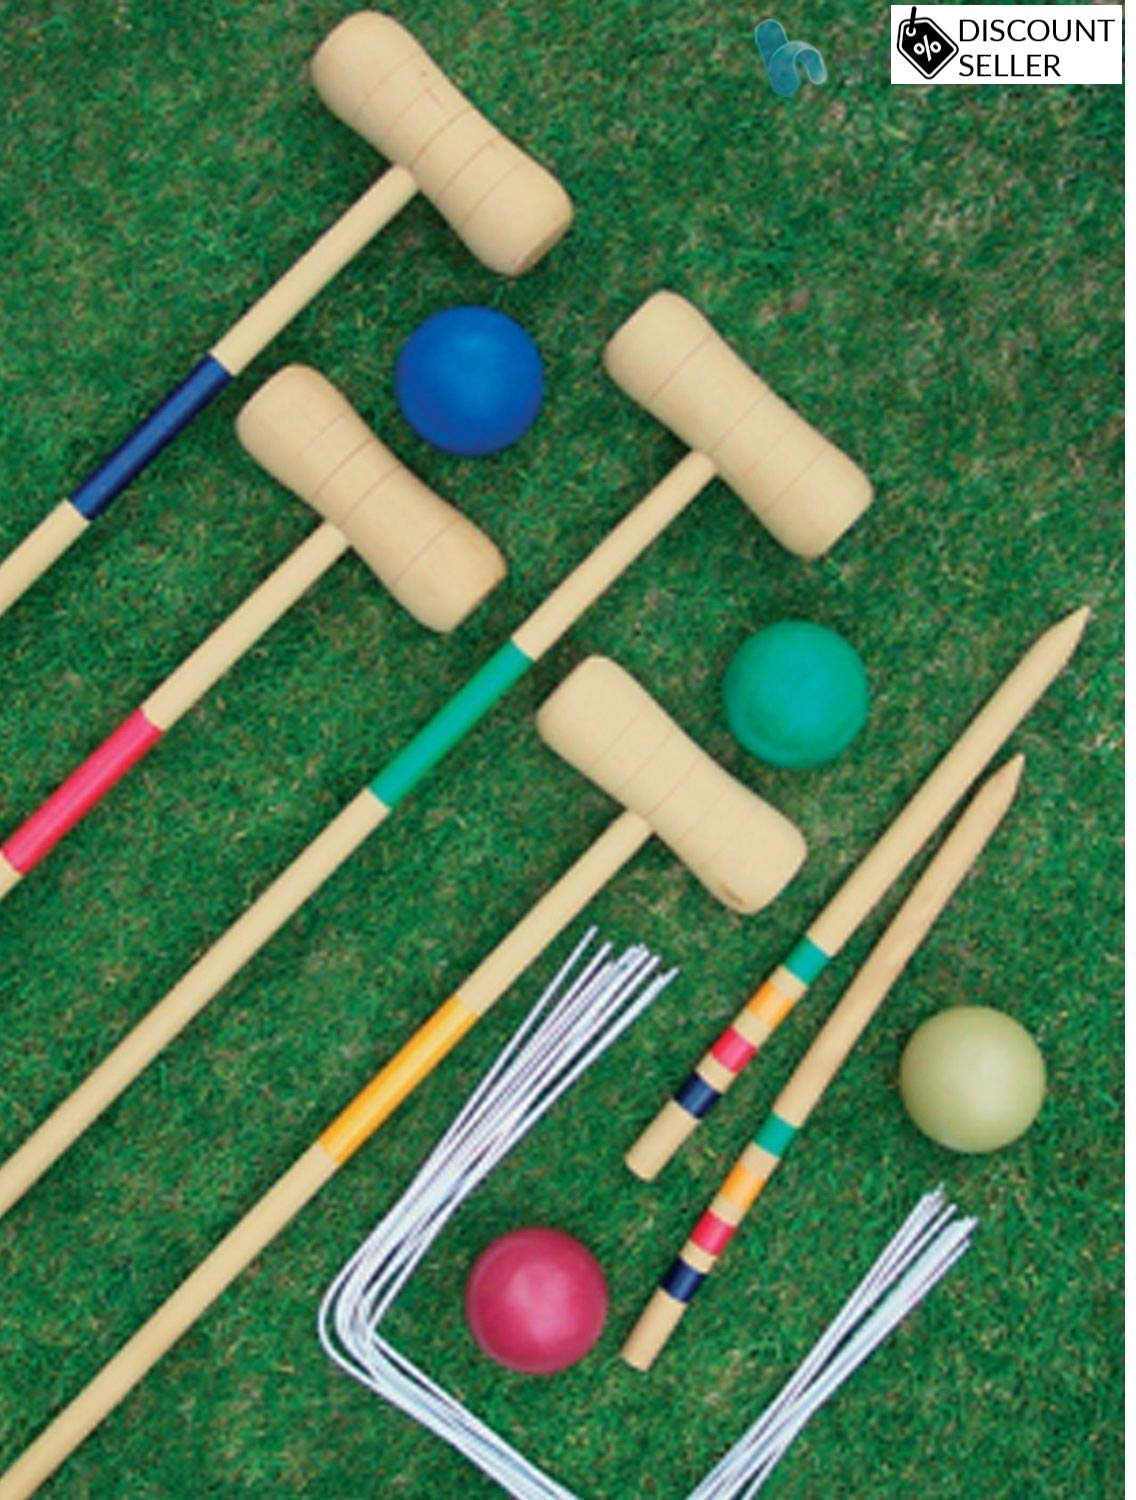 DiscountSeller CROQUET SET 4 PLAYER COMPLETE WOODEN OUTDOOR GARDEN TOY FUN COMES WITH CARRY BAG